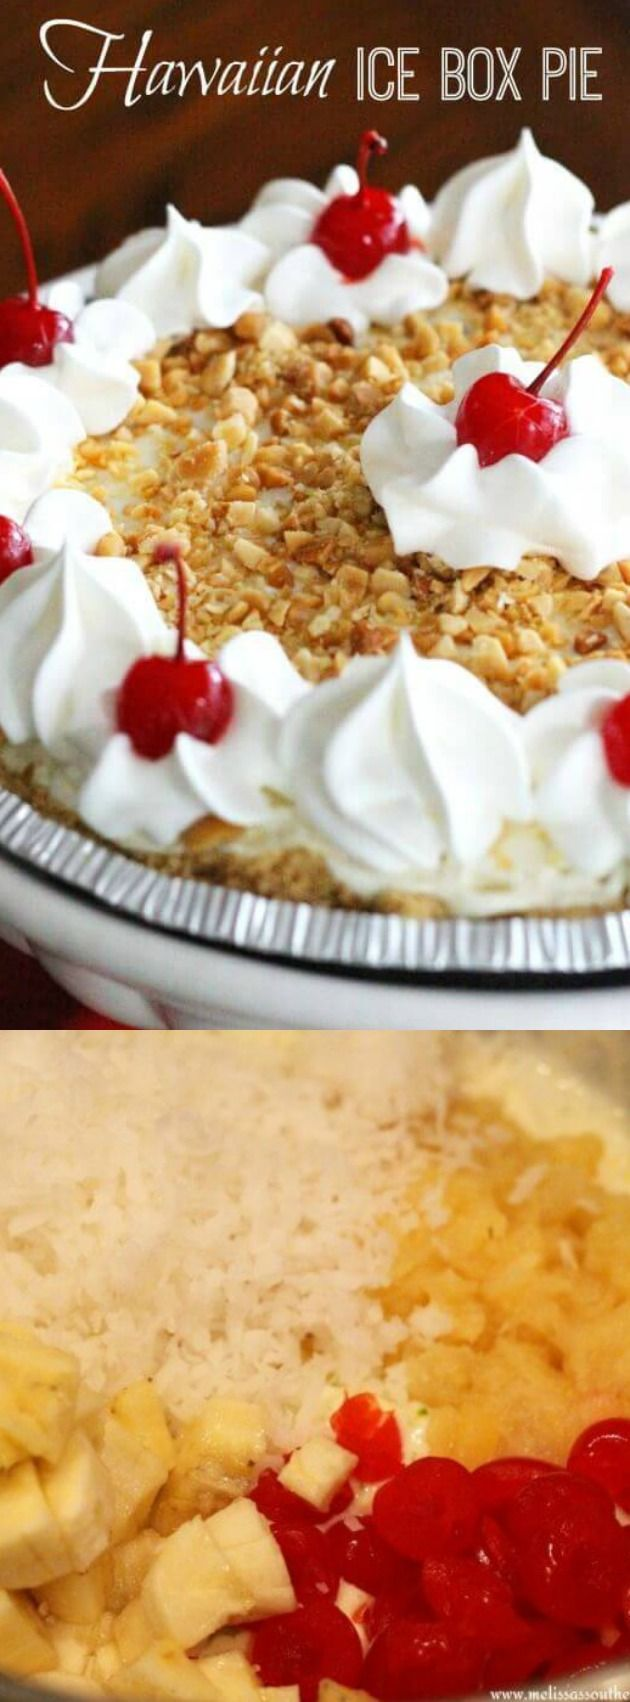 This Hawaiian Ice Box Pie recipe from Melissa's Southern Style Kitchen is the perfect no-bake ice box pie that is packed with flavors that will make you think you're on vacation to a tropical island paradise!